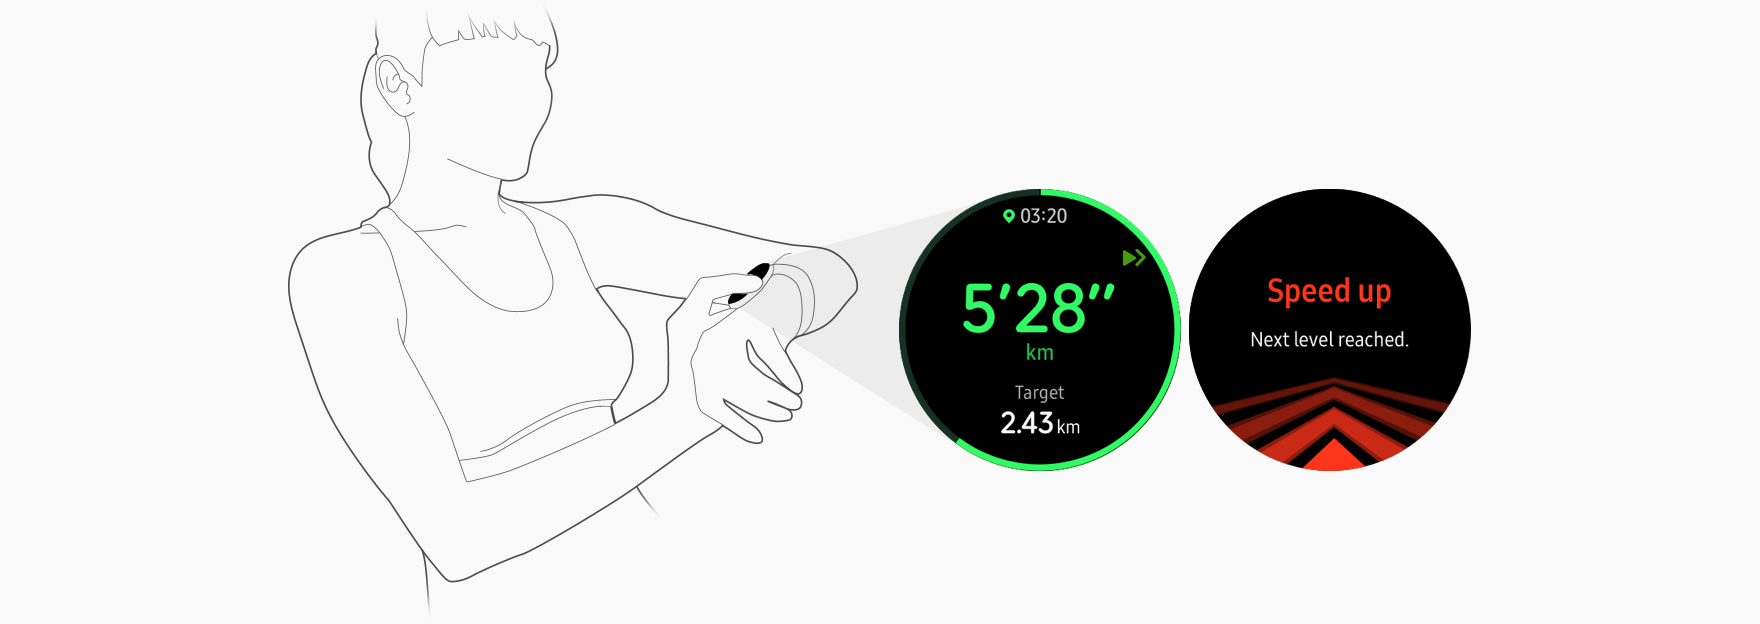 The user can start running with a pace setter target in the Samsung Health app. The watch provides responses by displaying progress to the target or encouraging the user to run faster.